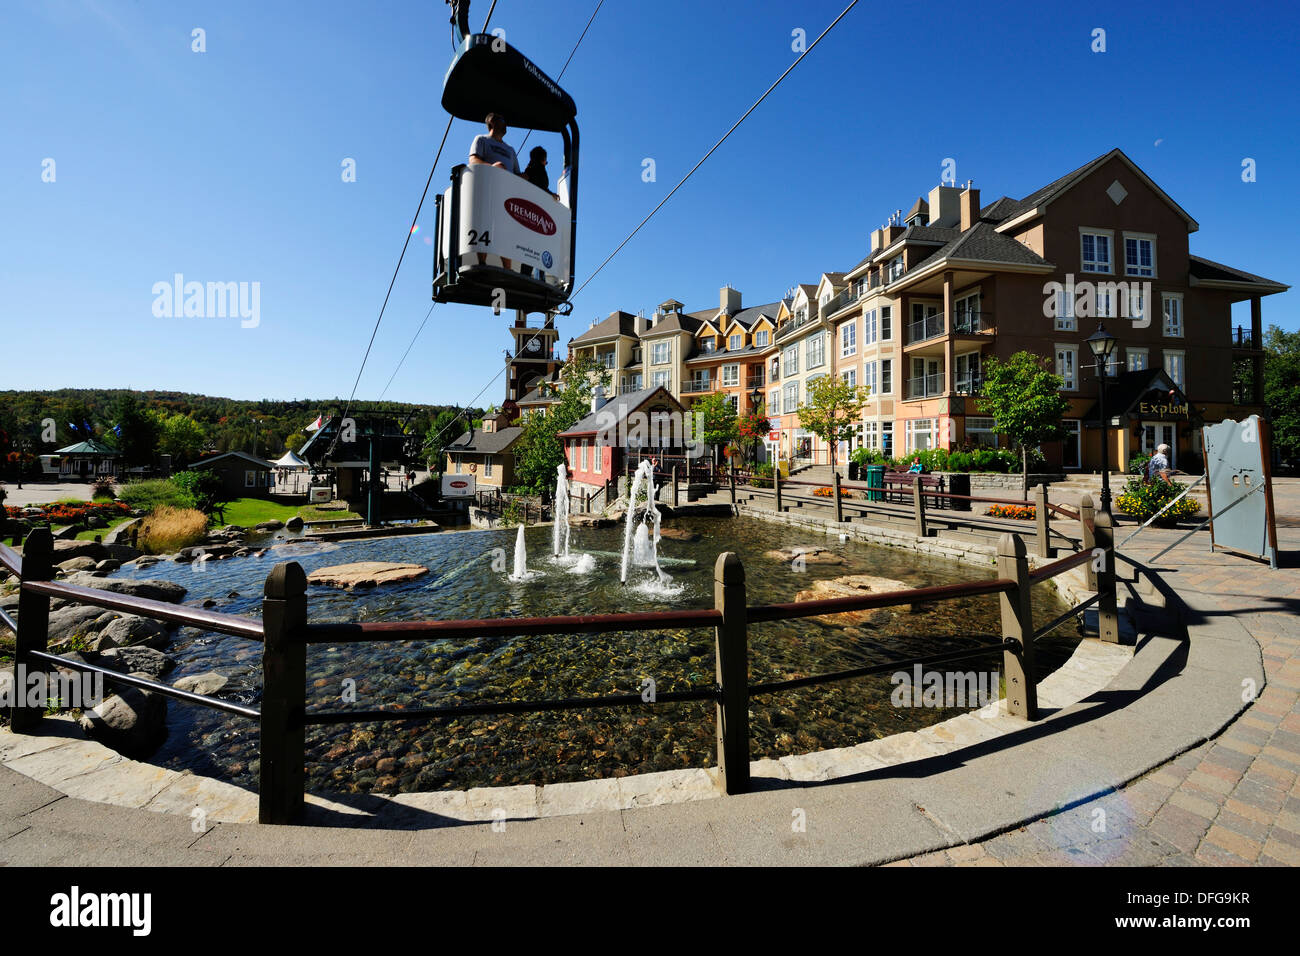 Cable car running across the pedestrian area of ​​Mont-Tremblant, Mont-Tremblant, Quebec Province, Canada - Stock Image